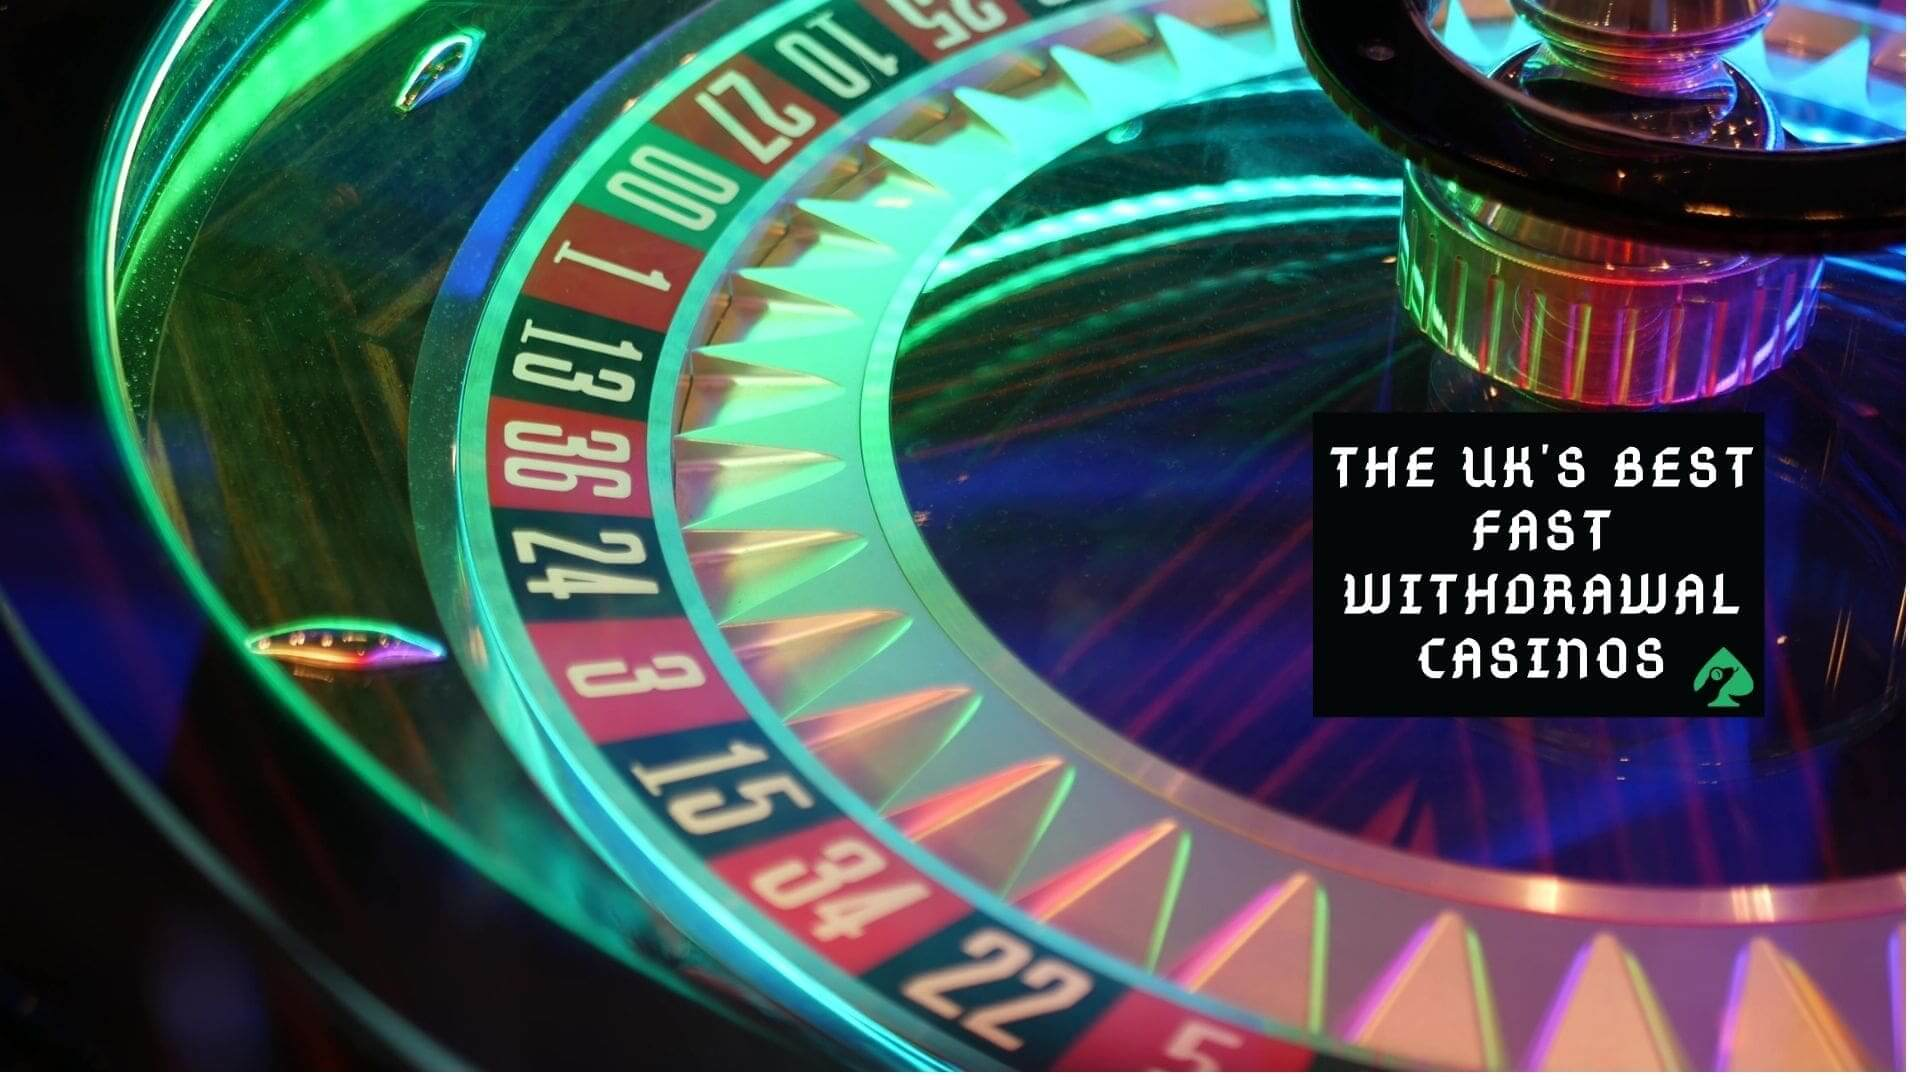 FAST PAYOUT CASINOS IN THE UK